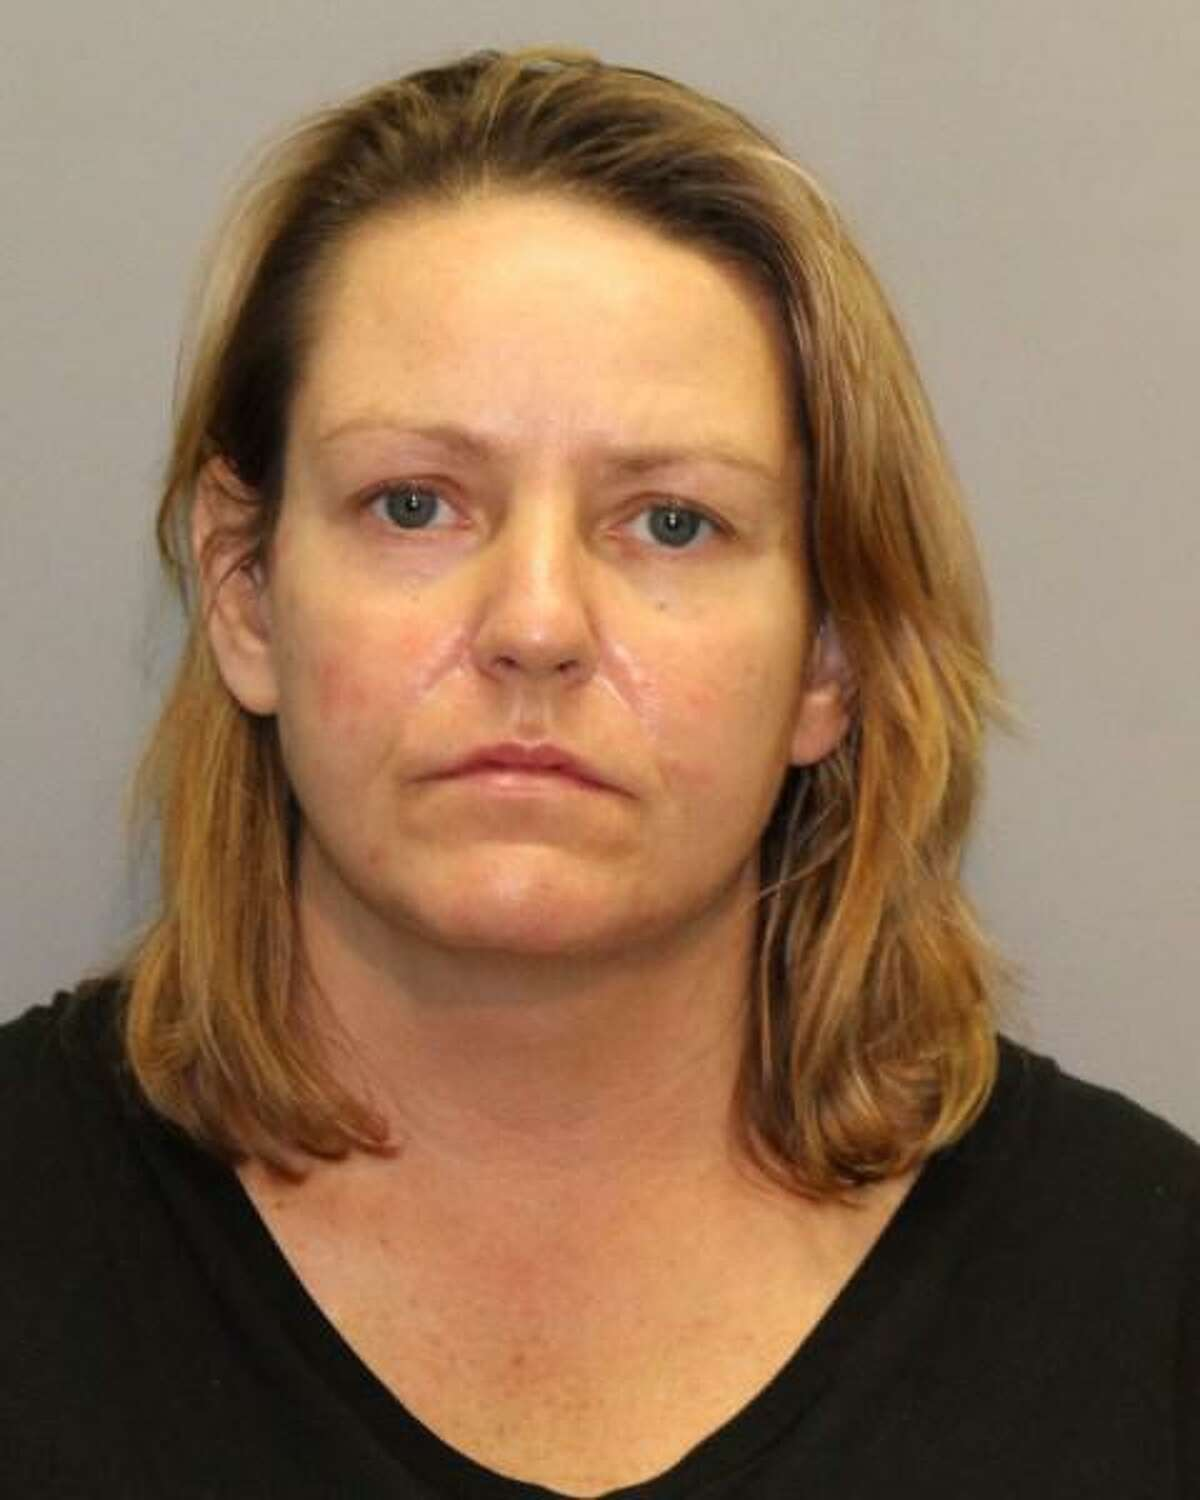 Melody Jean Christensen is charged with murder and illegal discharge of a firearm in connection with a shooting March 1 on South Main Street in Middletown, which left a man dead.